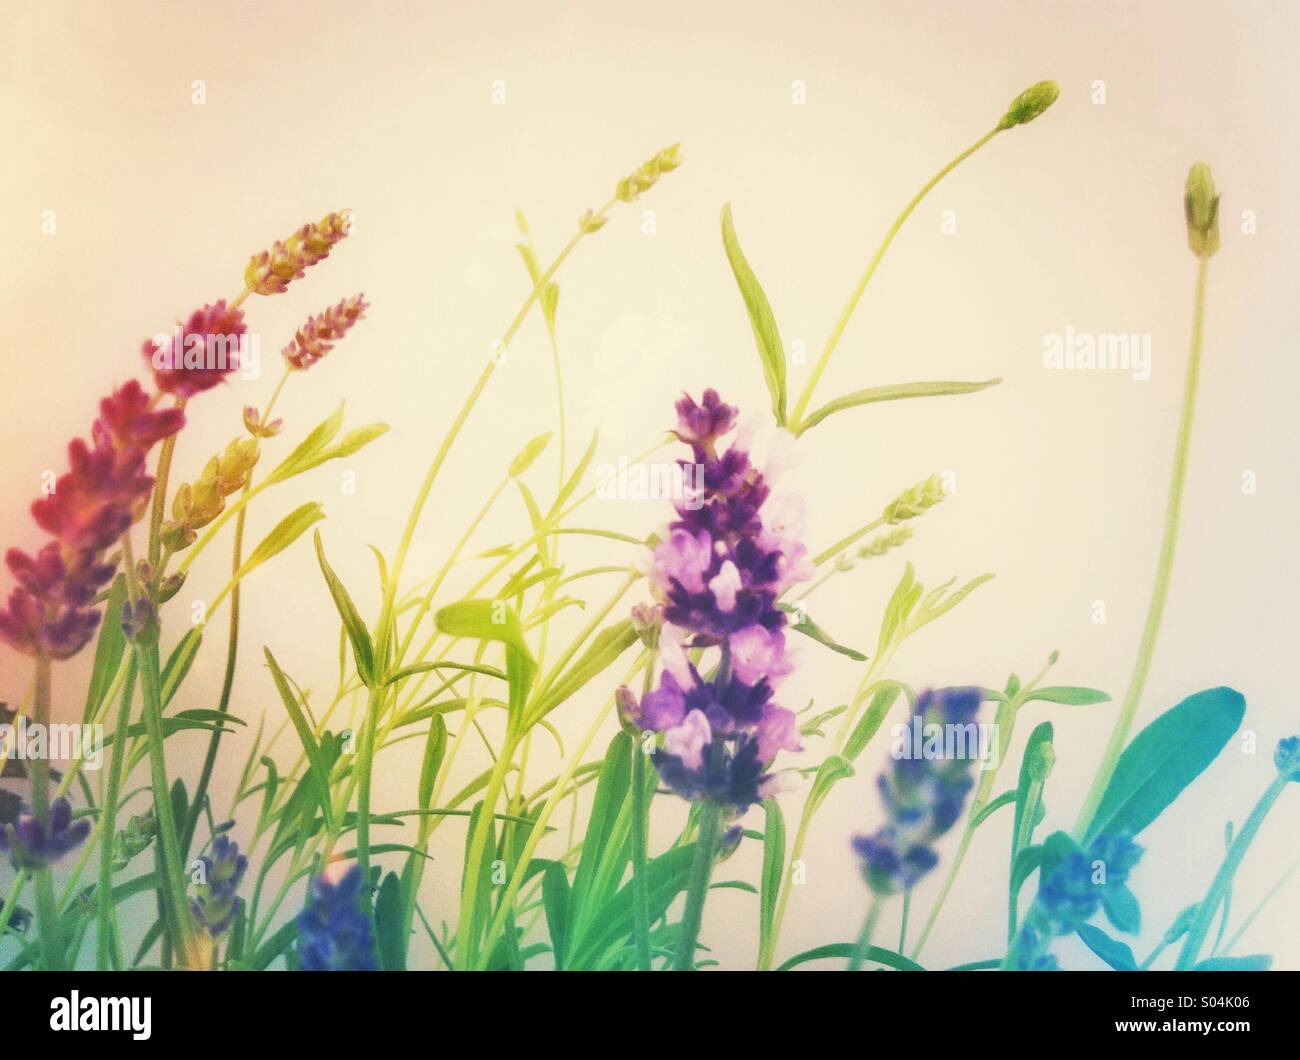 Lavender flowering plant - Stock Image